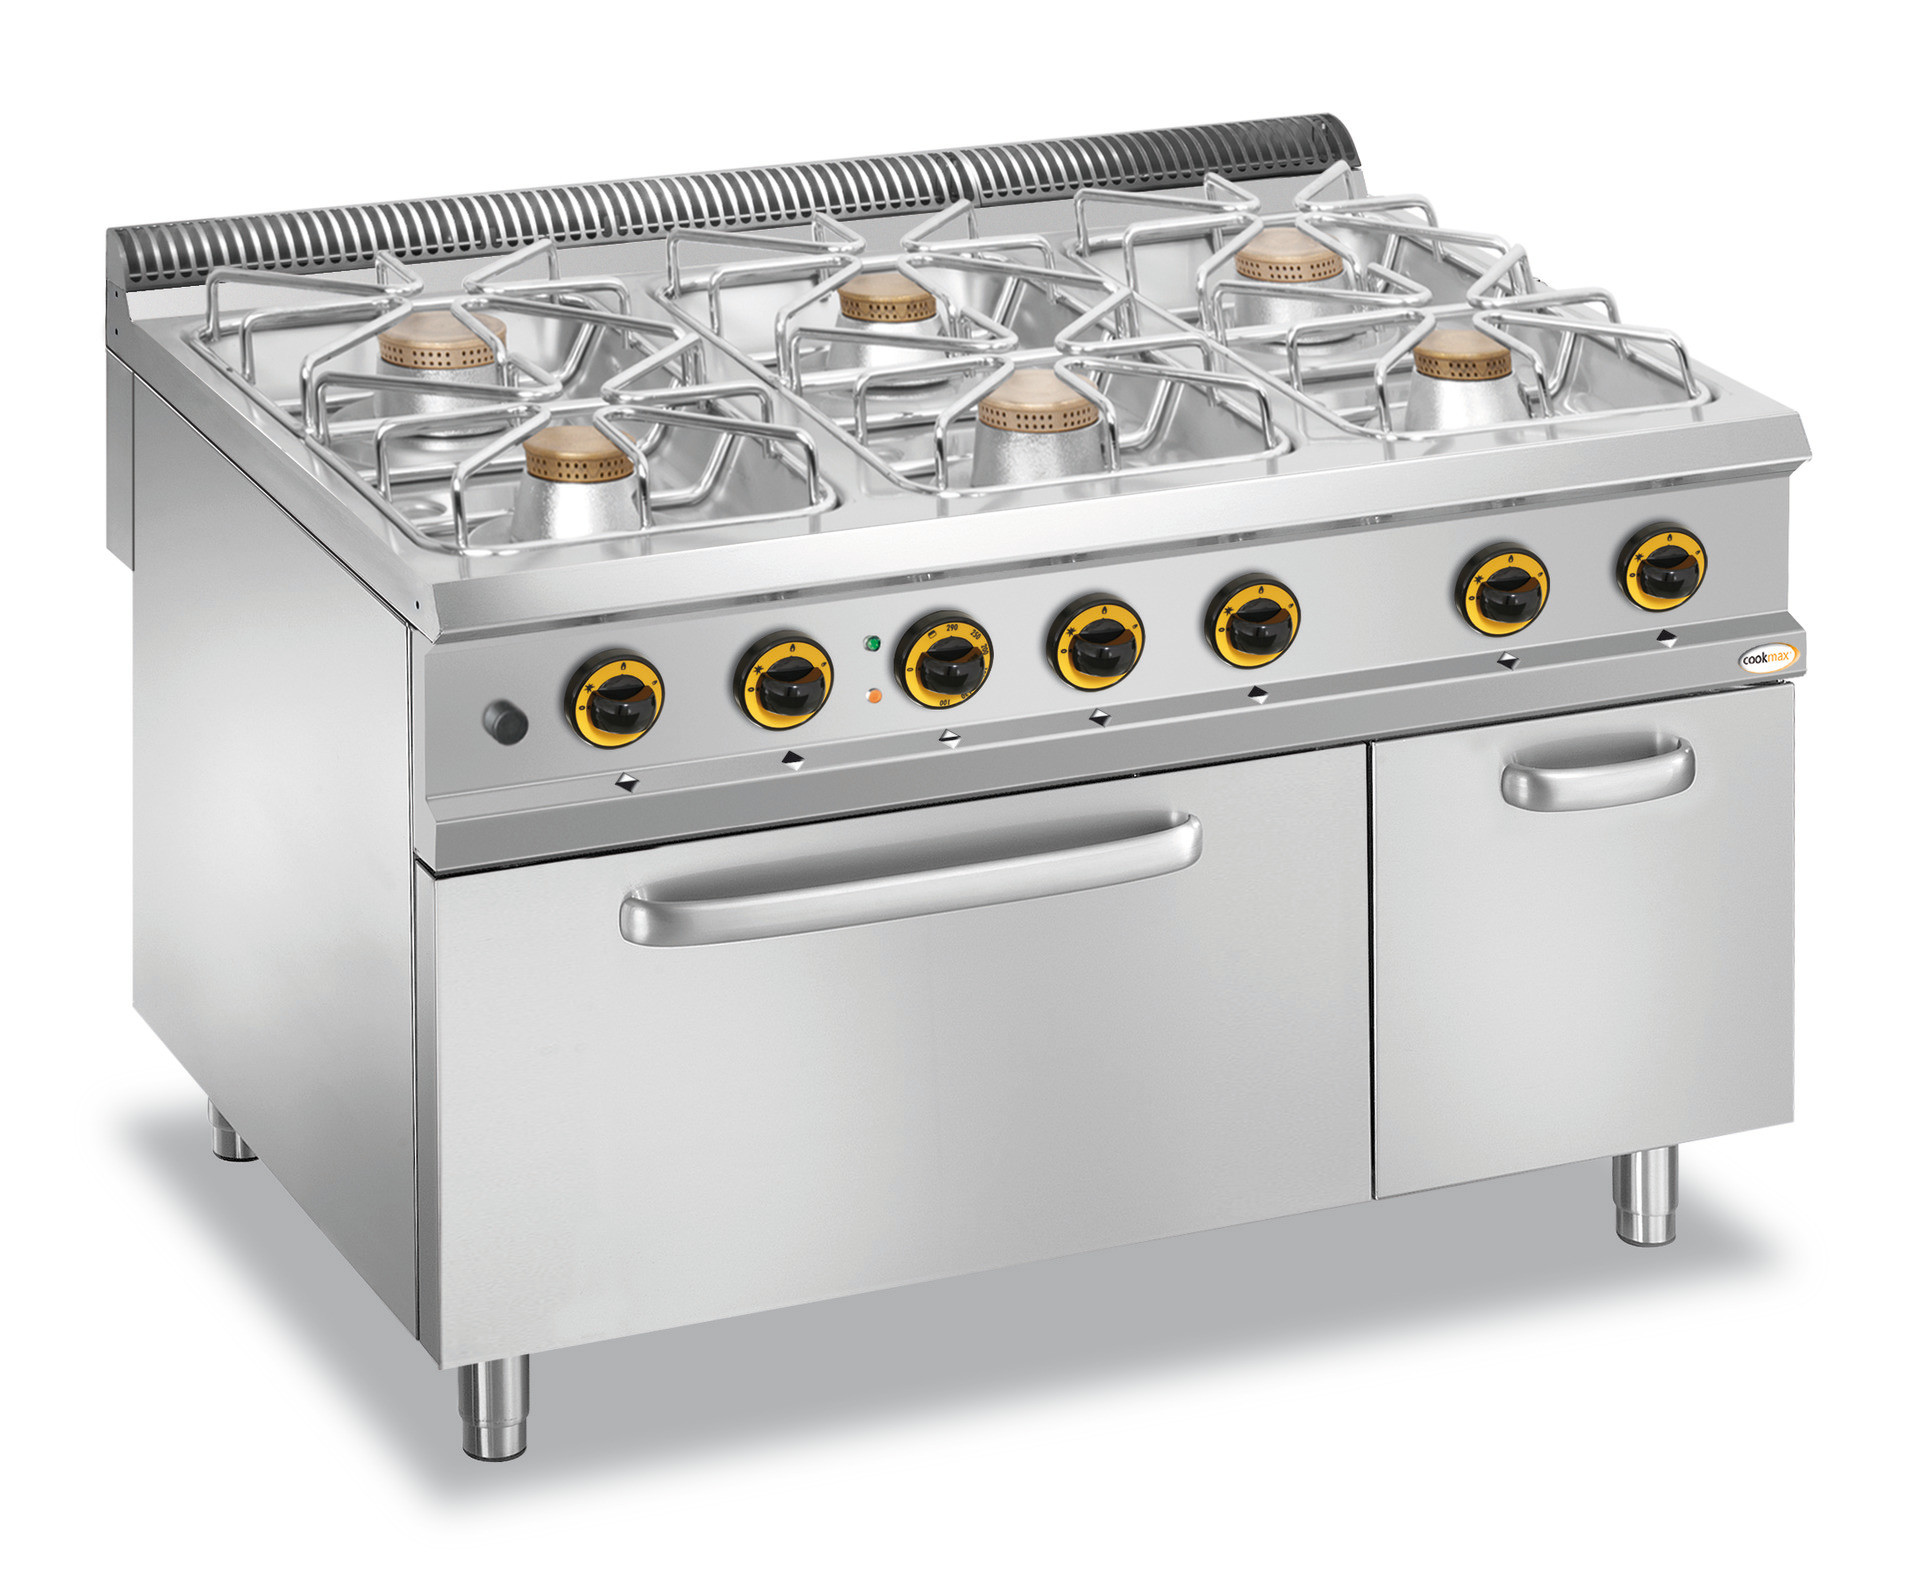 Gas Herd 6 Brenner Elektro Backofen Gn 2 1 Neutralfach 1200 X 900 X 850 Mm Cookmax